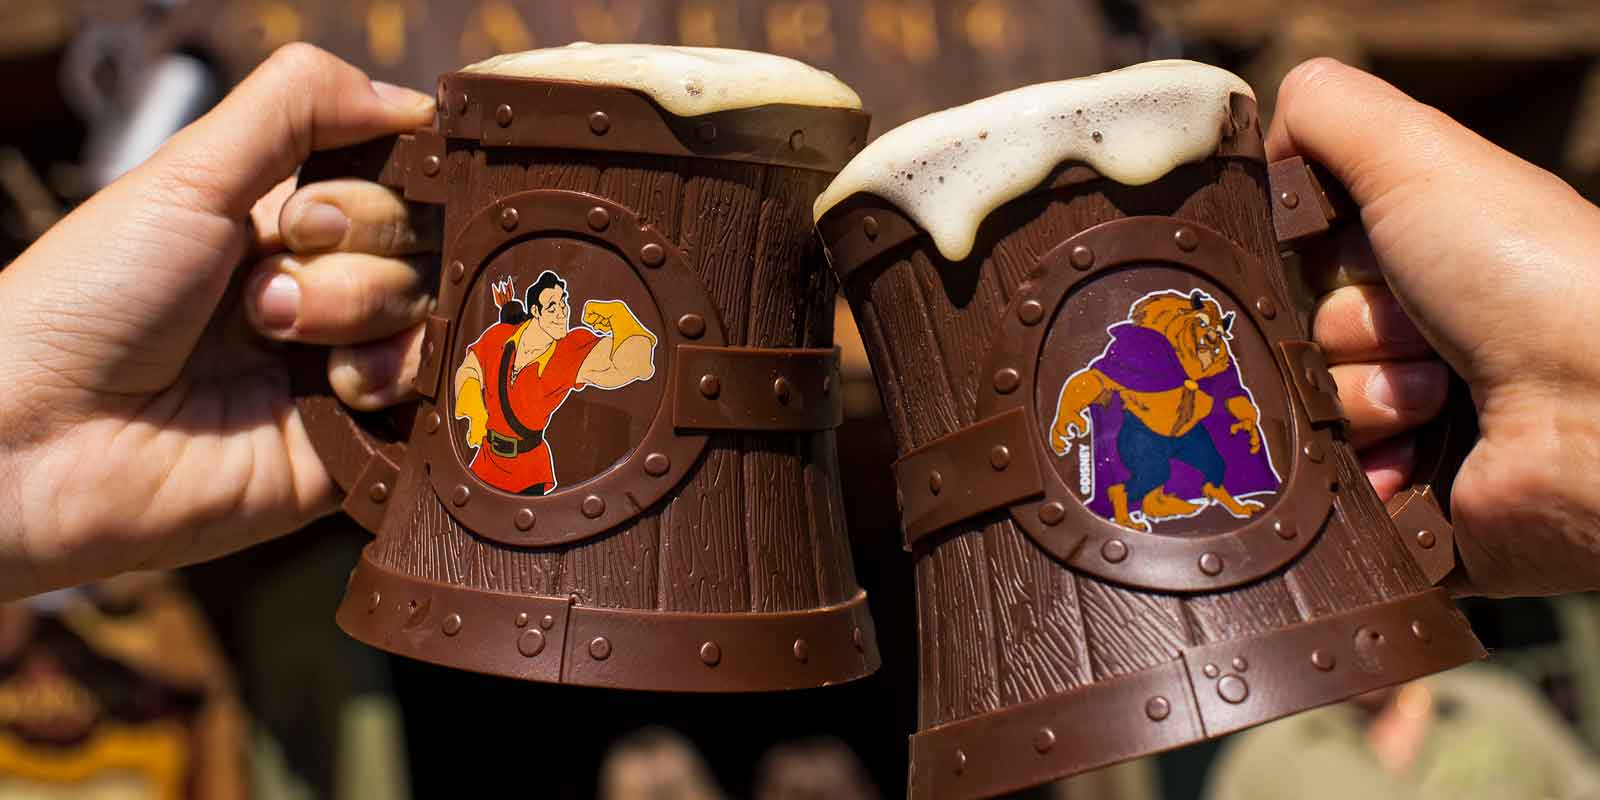 Two adults clink plastic mugs overflowing with Le Fou's Brew at Magic Kingdom.